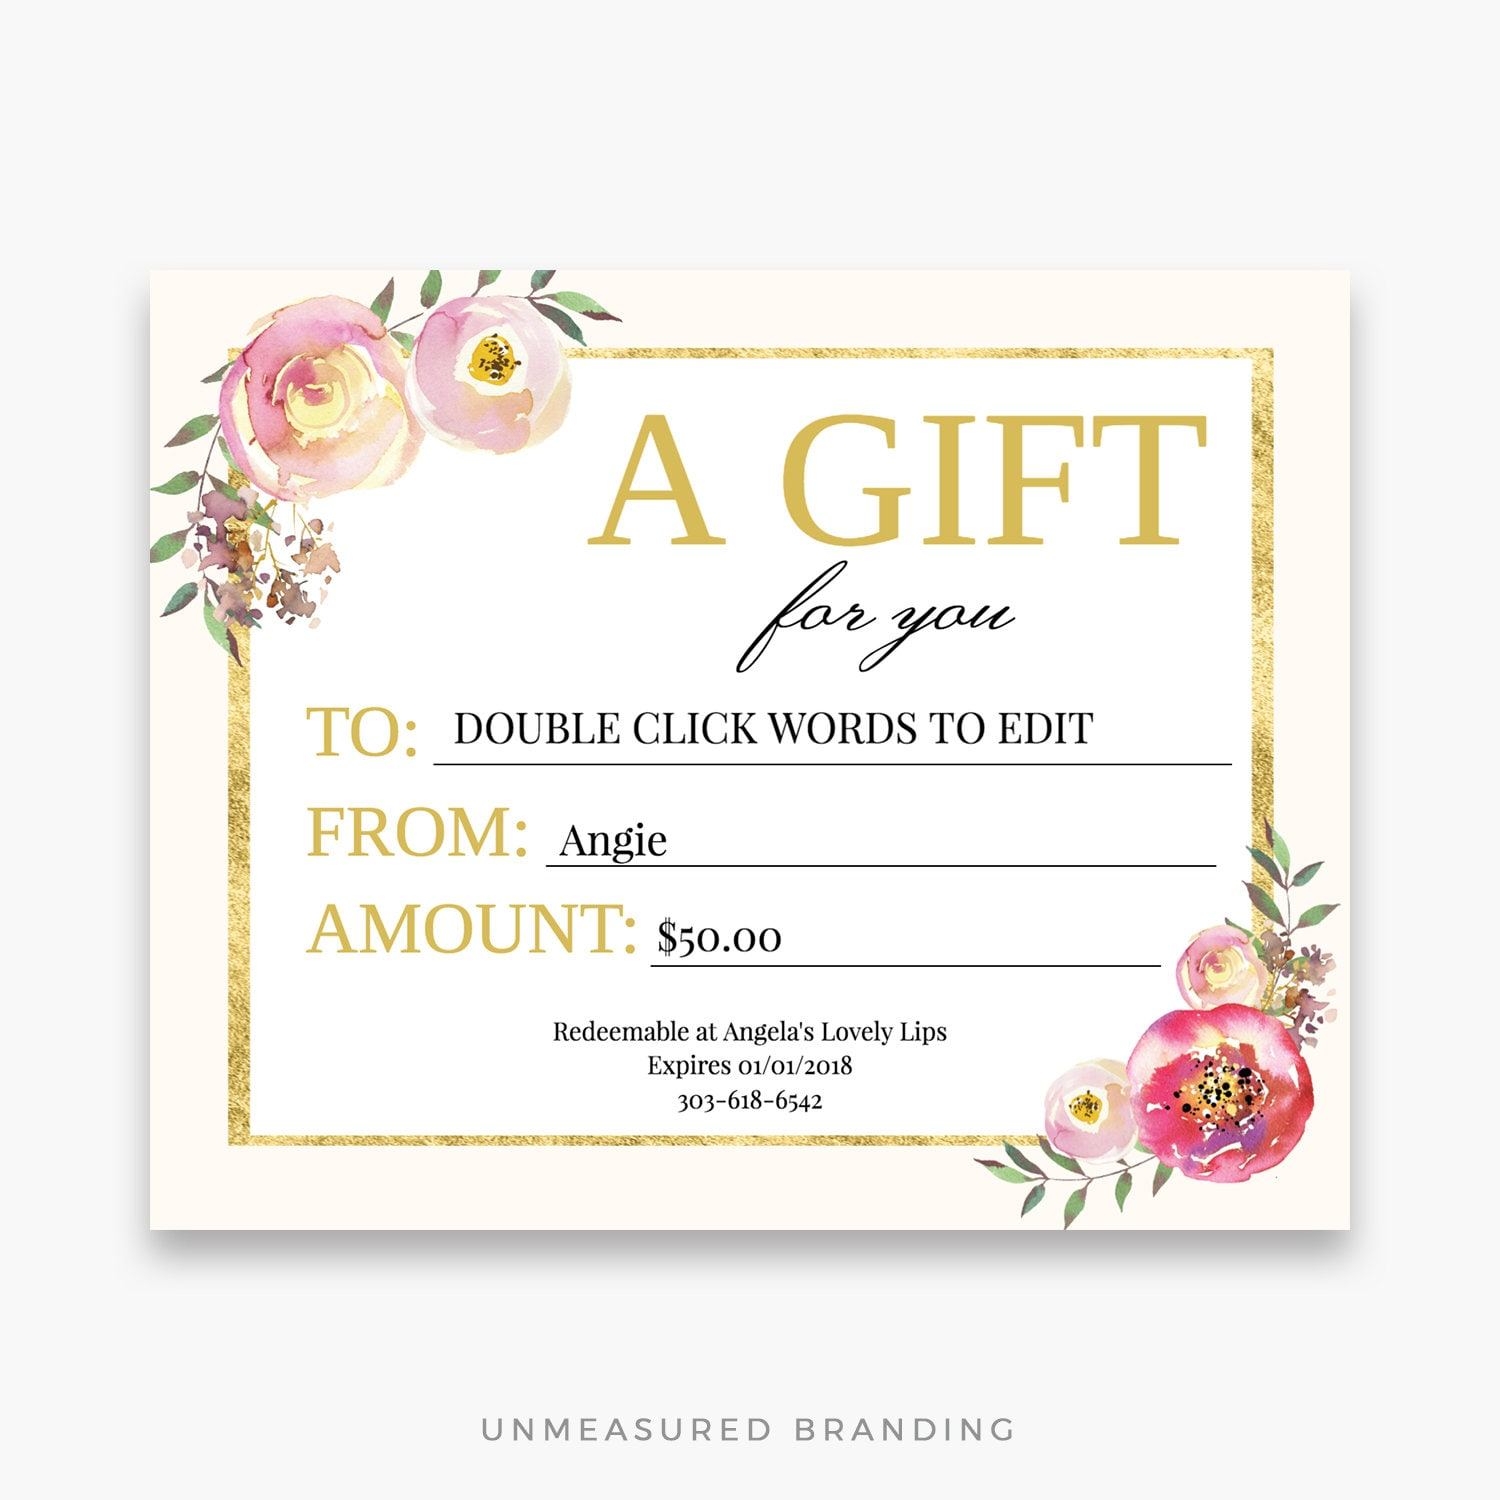 Lipsense Gift Certificate Floral Gift Card Makeup Gift Etsy